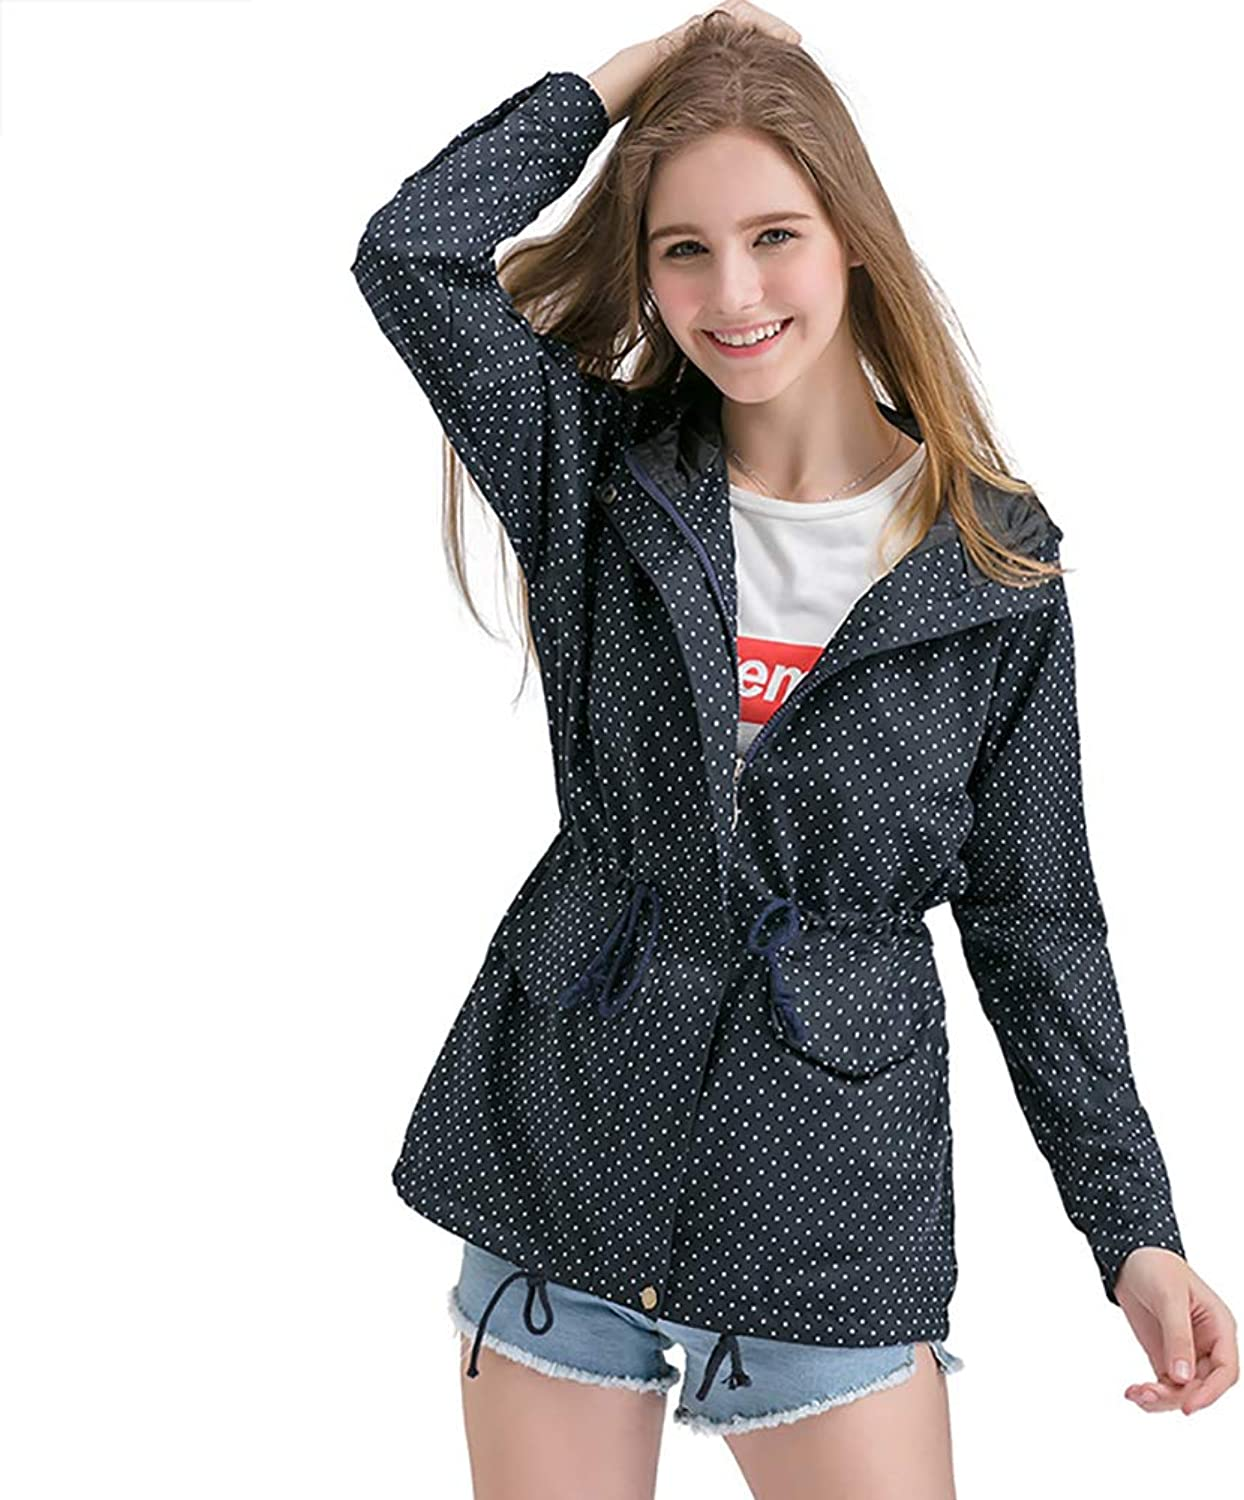 Women's Windbreaker Jacket, Long Hooded Lapel XL top in Spring and Autumn Fashion